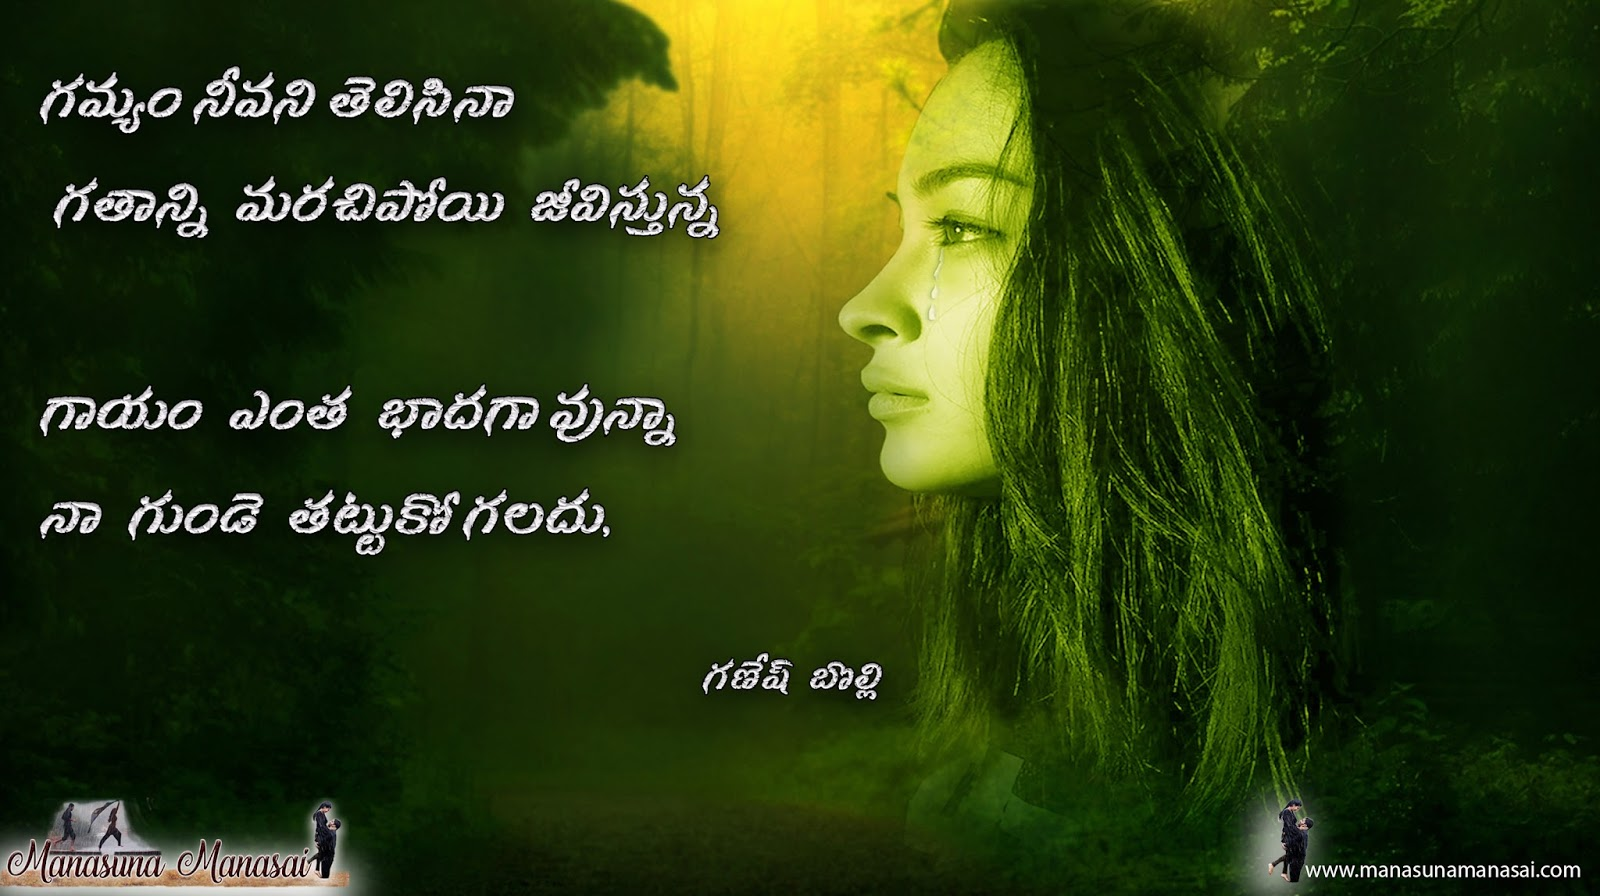 Cute Telugu Love Quote Telugu Love Poems With Cute Couple Hd